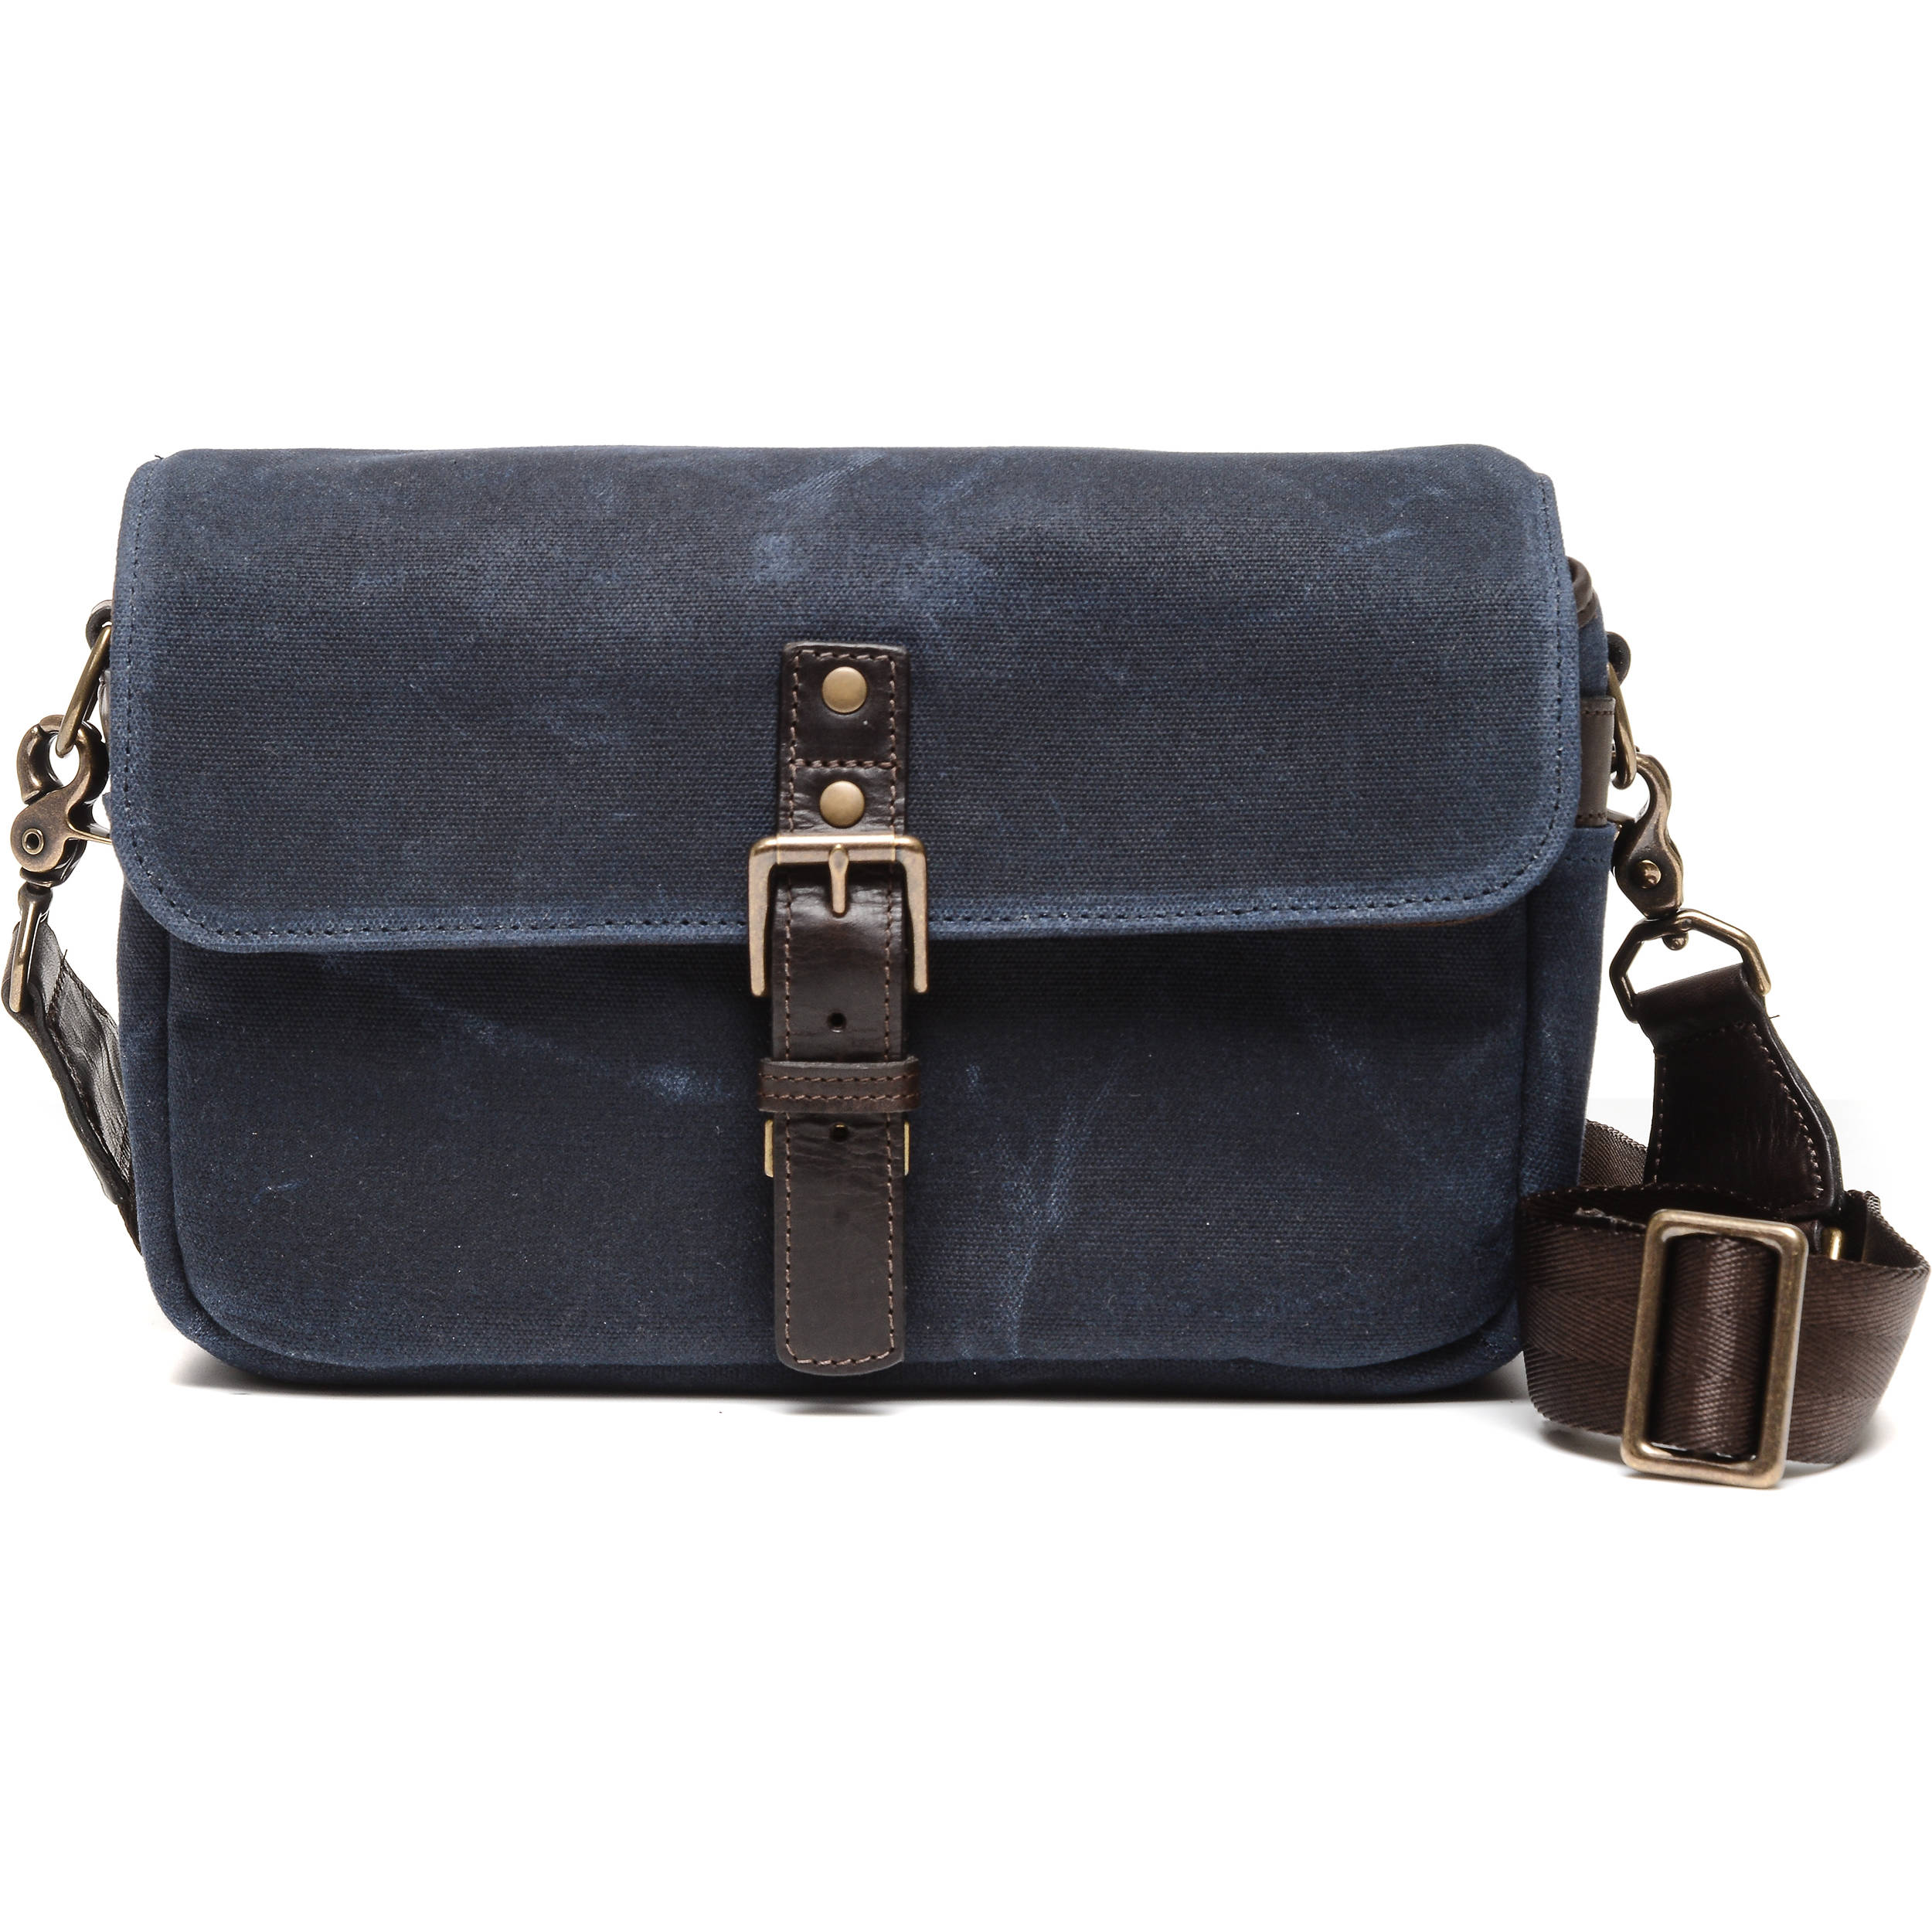 Ona Bowery Camera Bag Canvas Oxford Blue